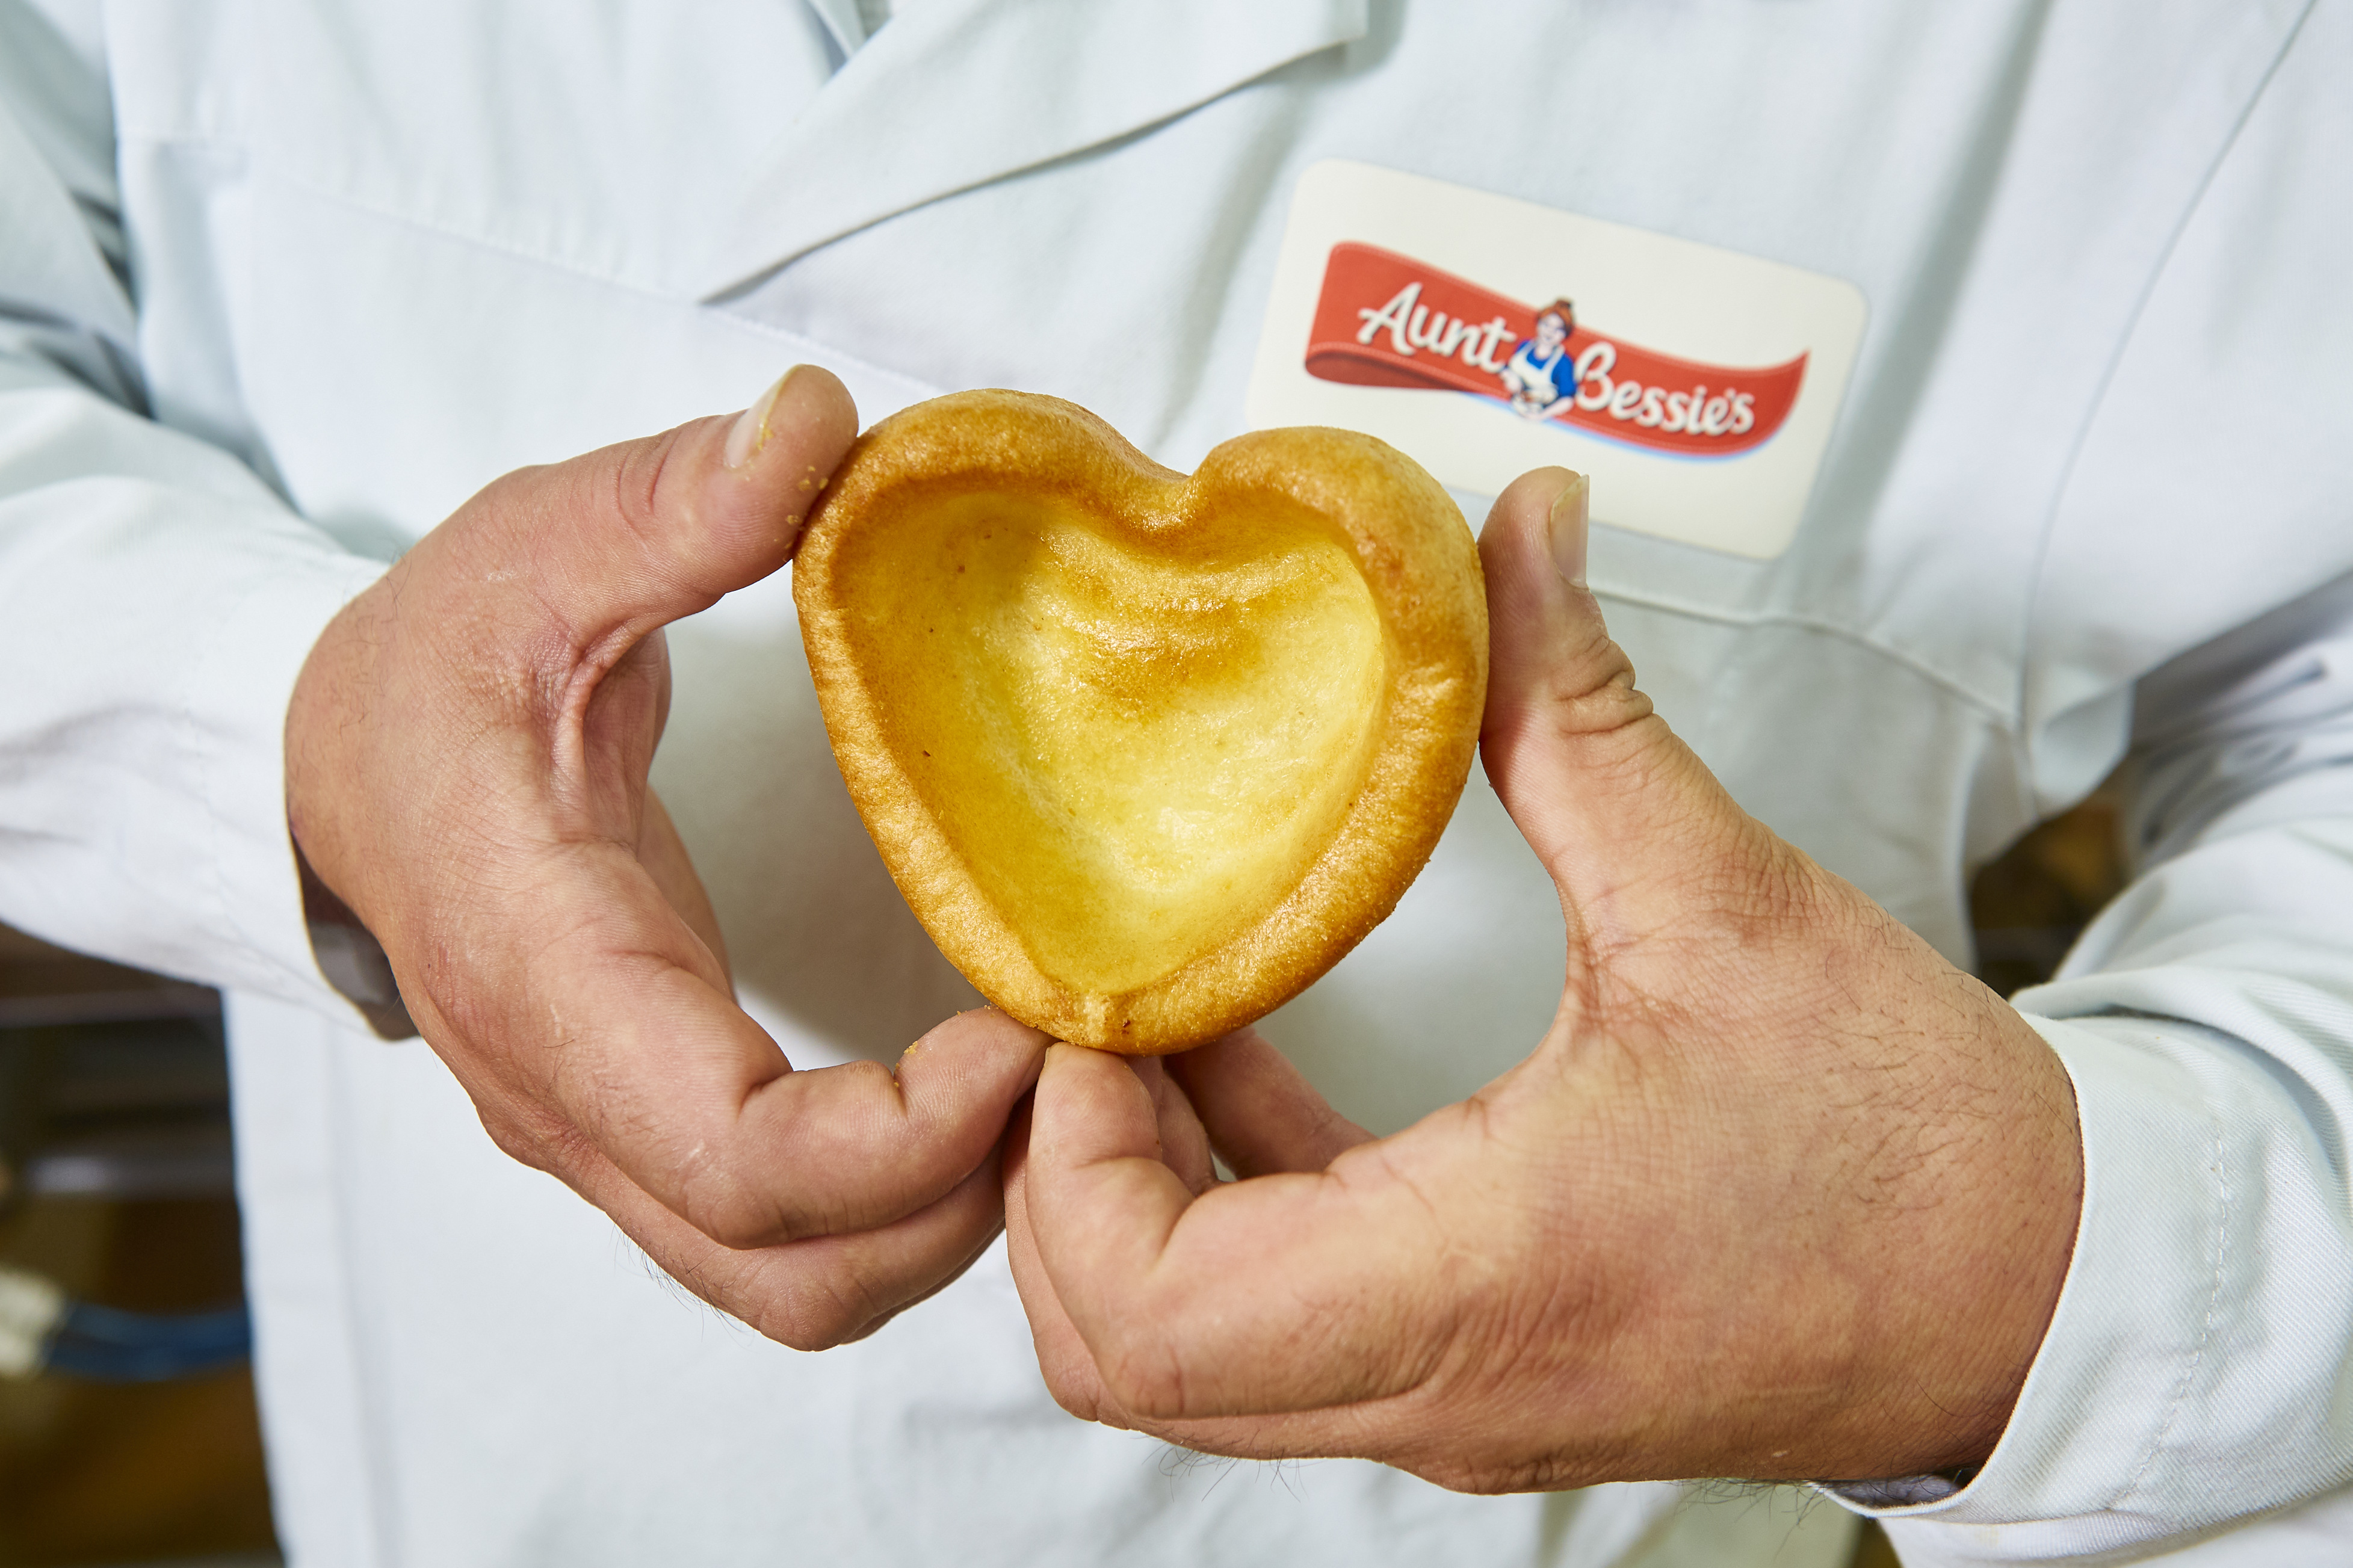 heart-shaped yorkshire pudding